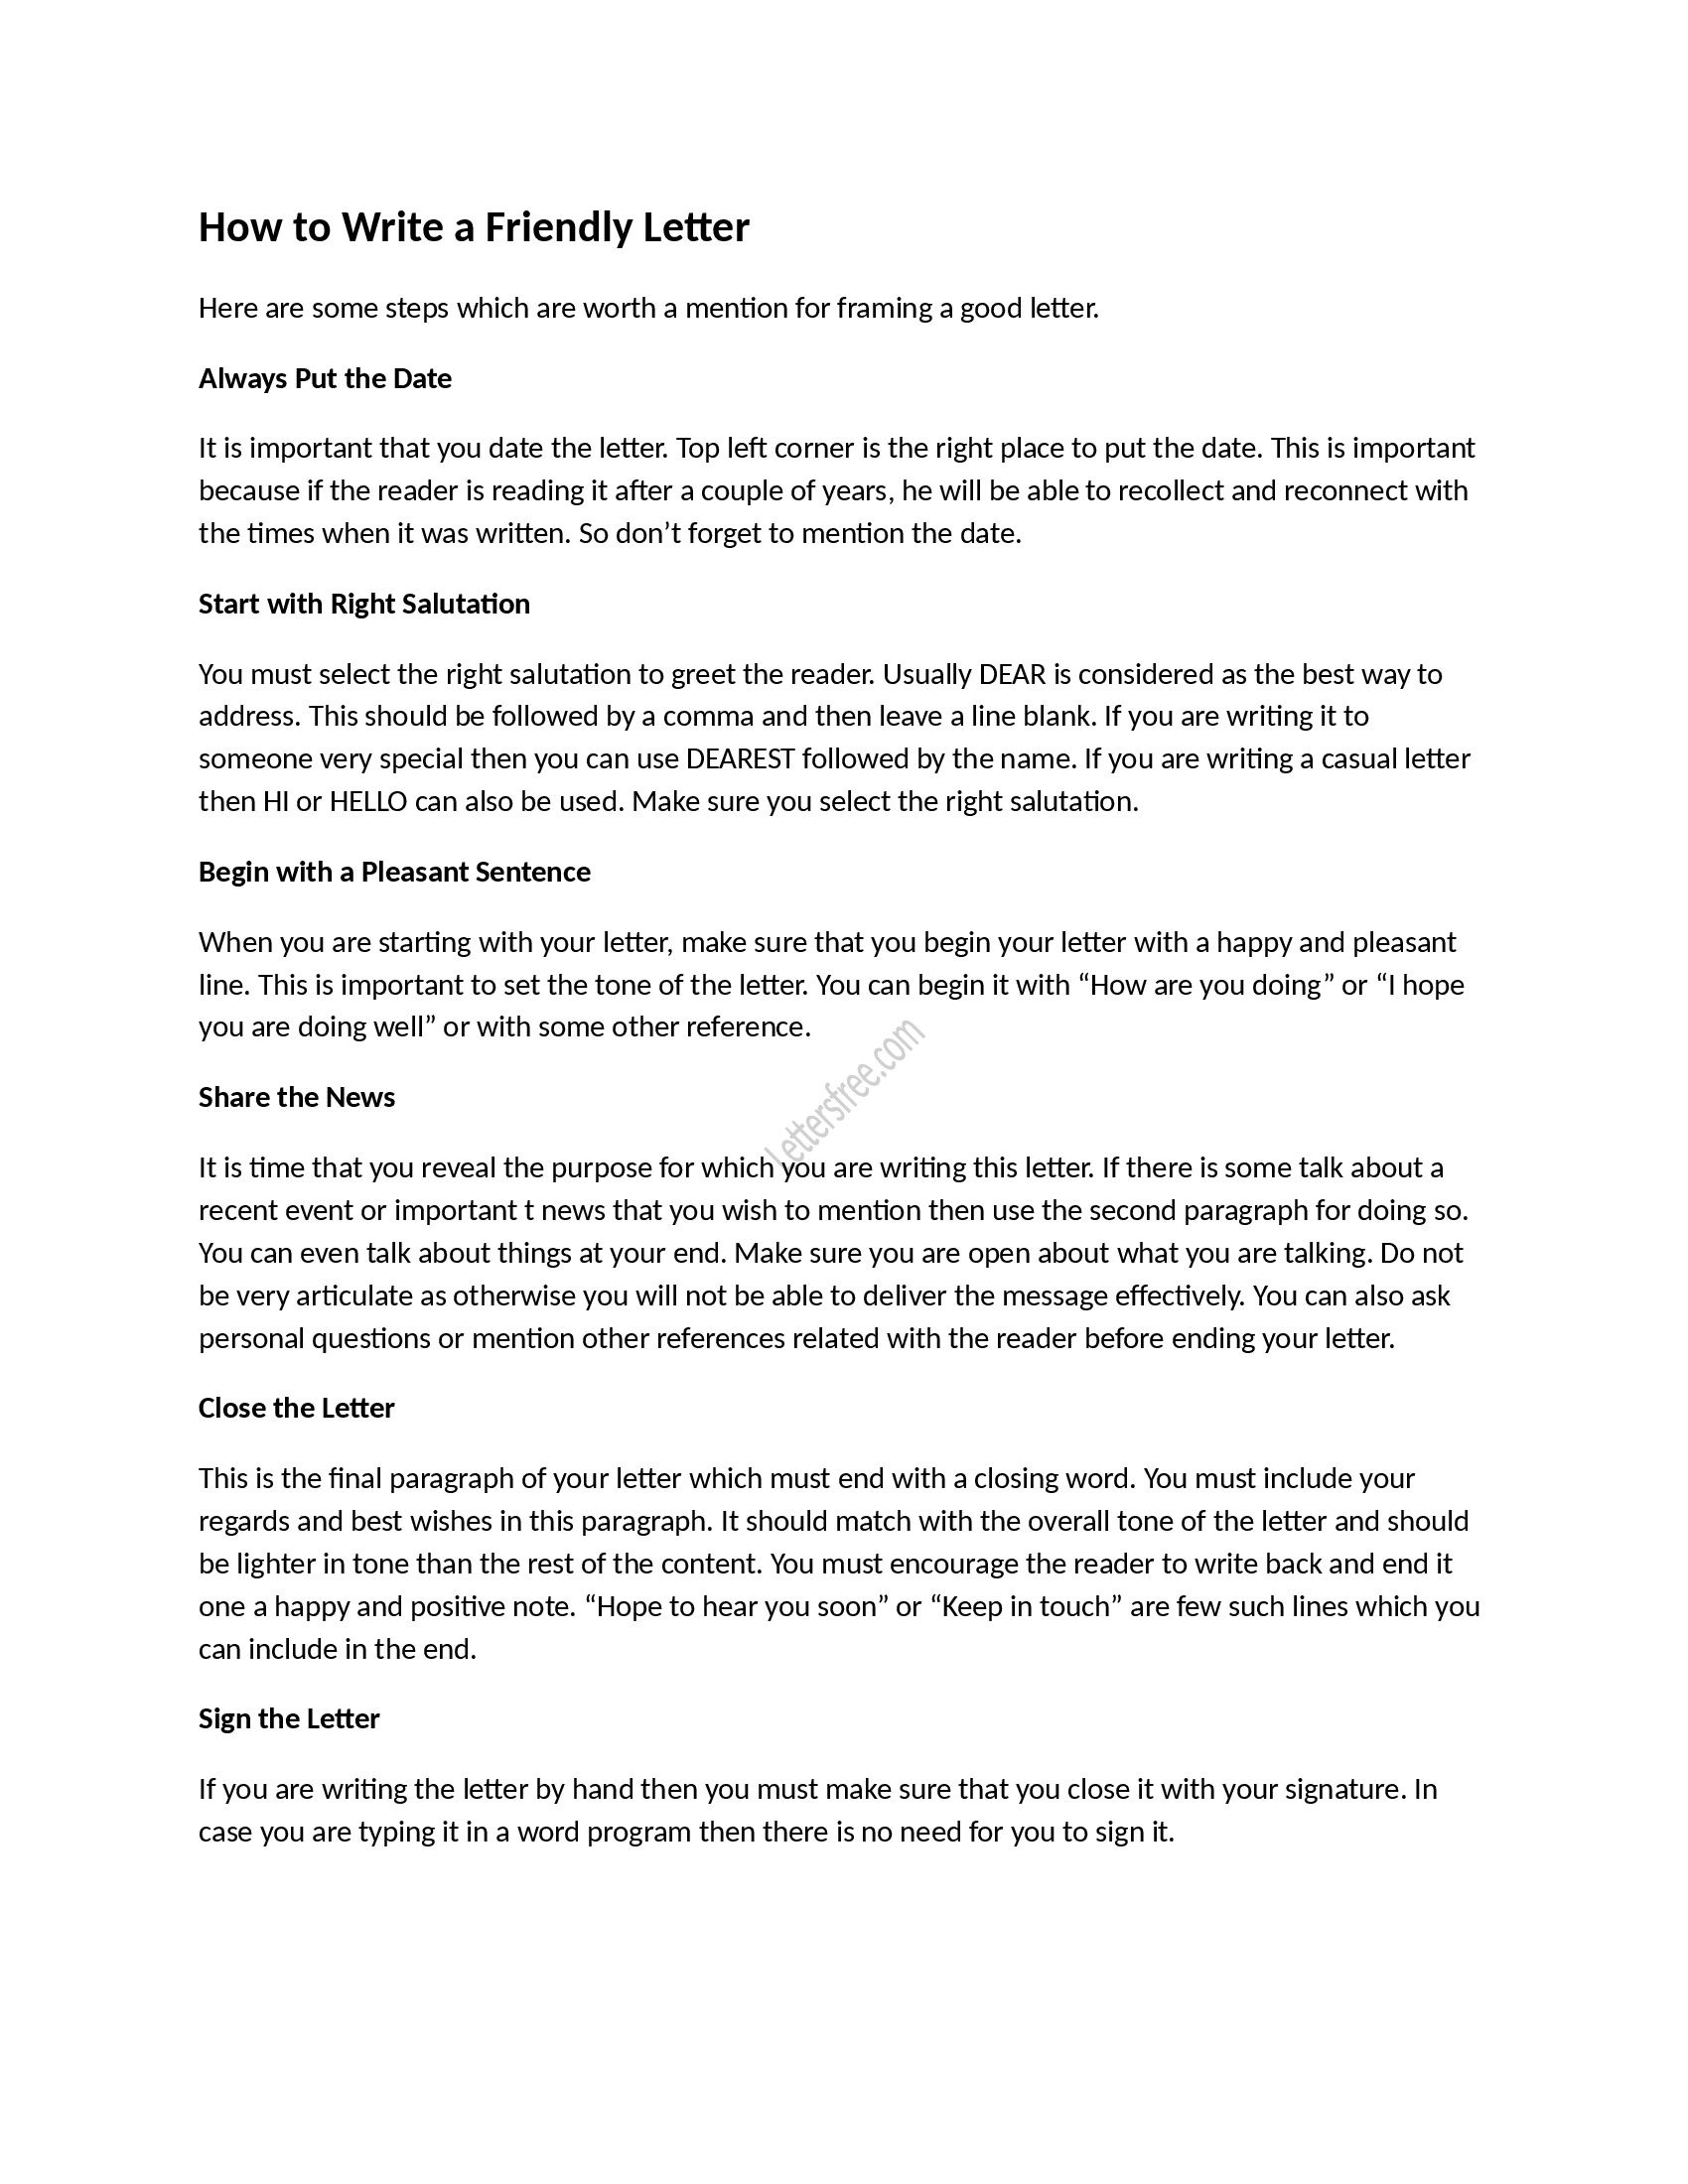 how to write a good friendly letter sample friendly letter tips for writing a friendly letter for high school friendlyletter samplefriendlyletter